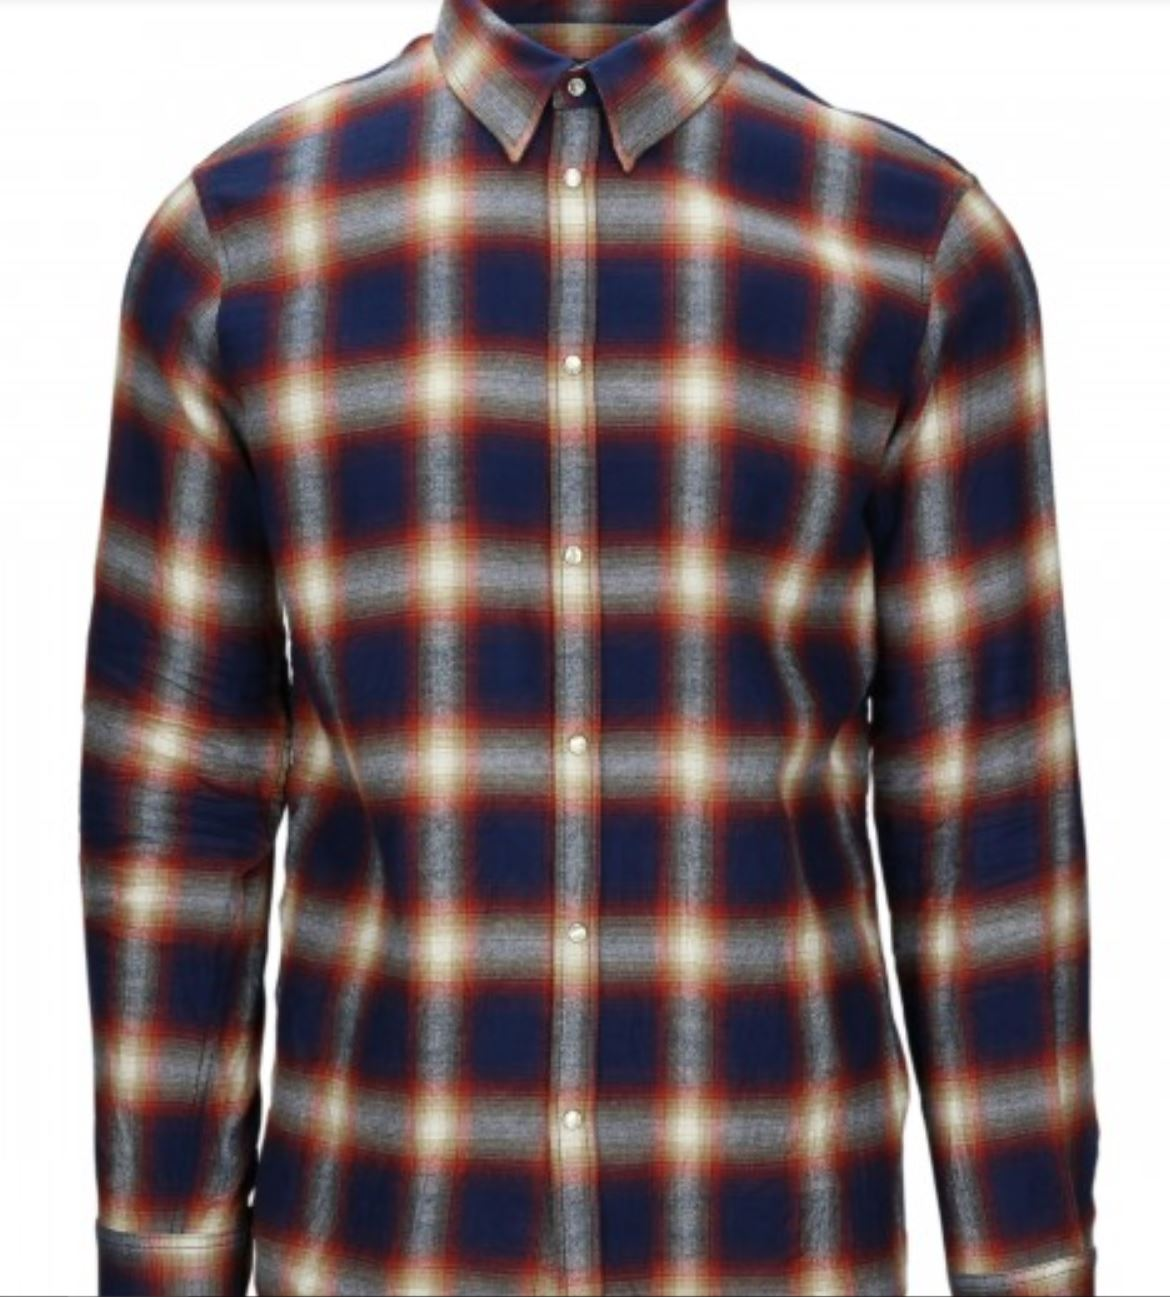 Flannel Shirt from zapclothing.com